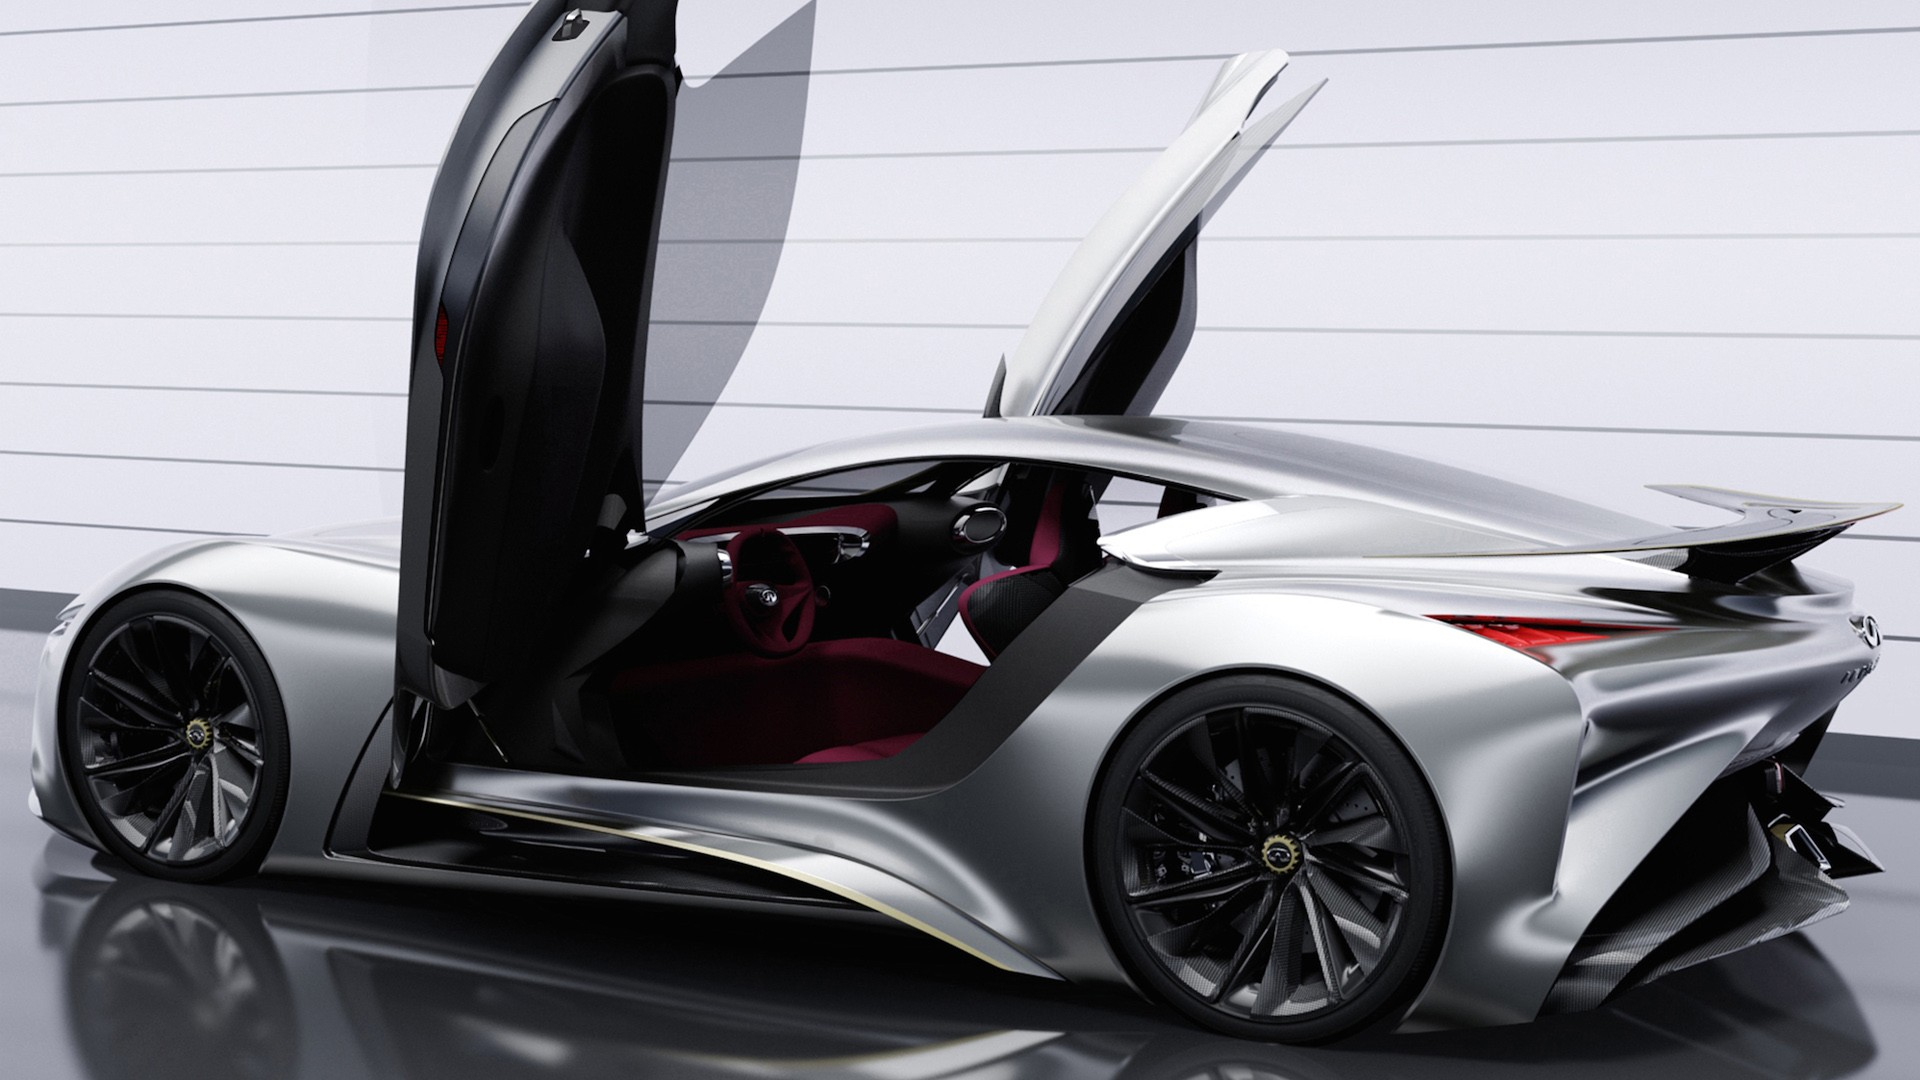 Car Wallpapers For Iphone 6 Infiniti Concept Vision Gran Turismo 2 Wallpaper Hd Car